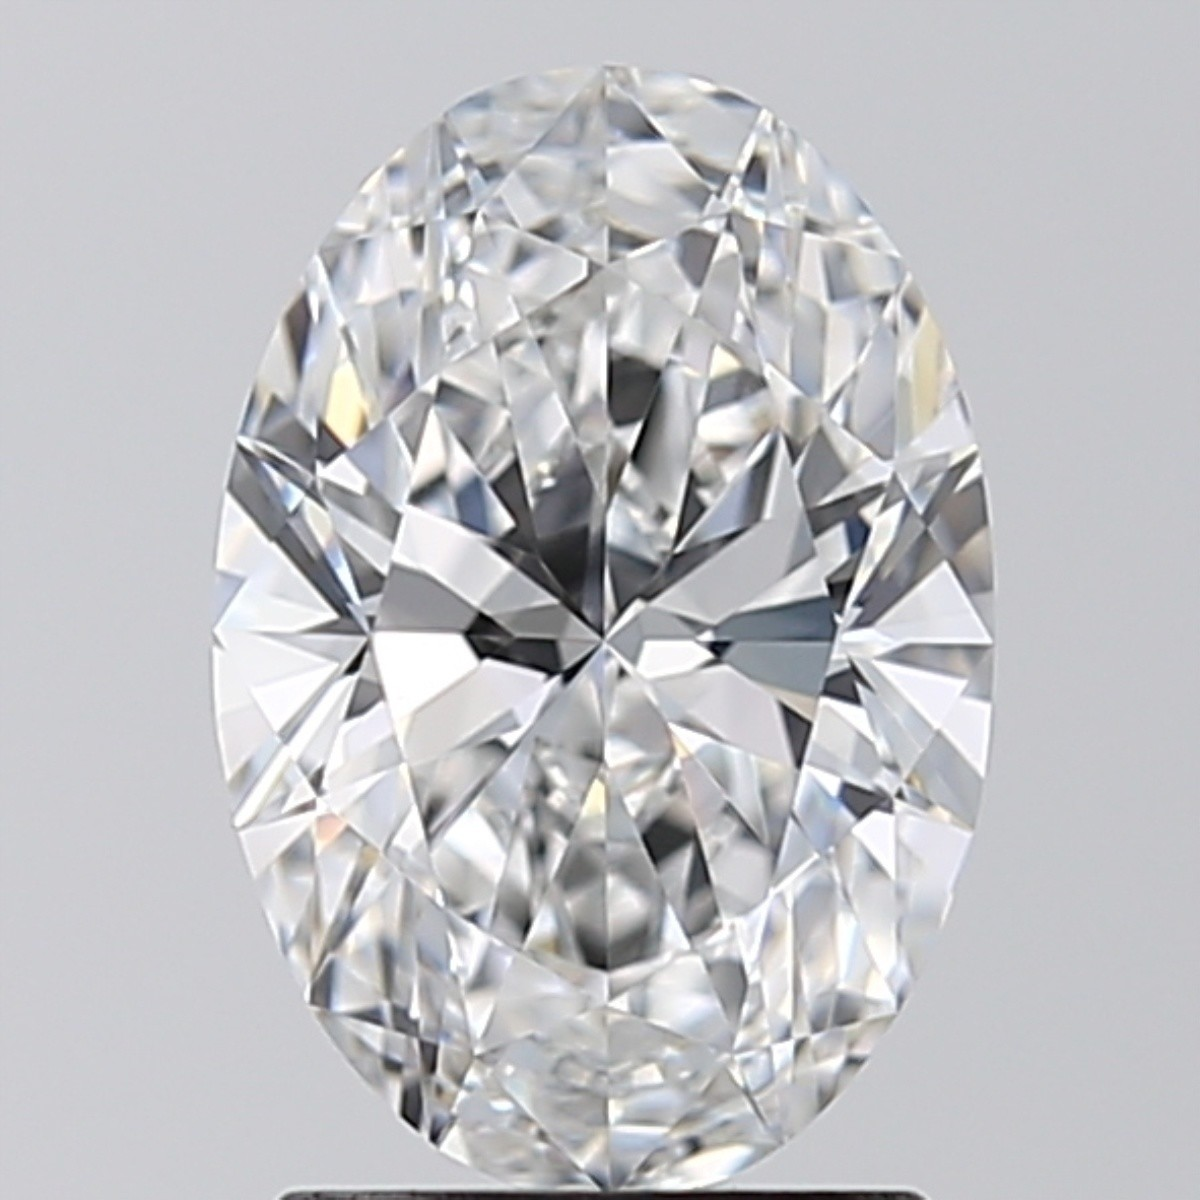 1.55 Carat Oval Diamond (D/VVS2)